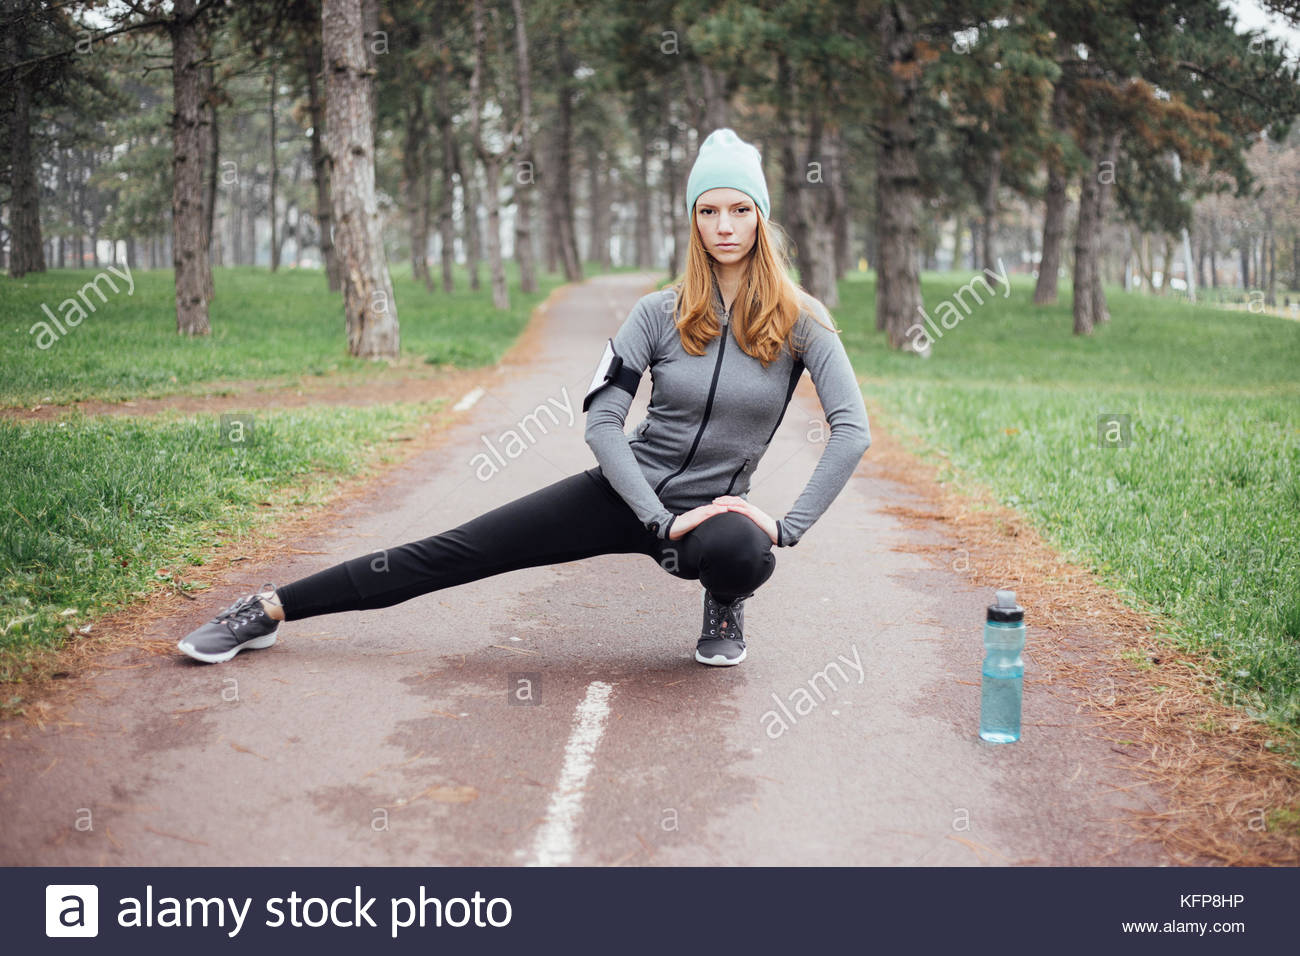 Young women exercise in park - Stock Image